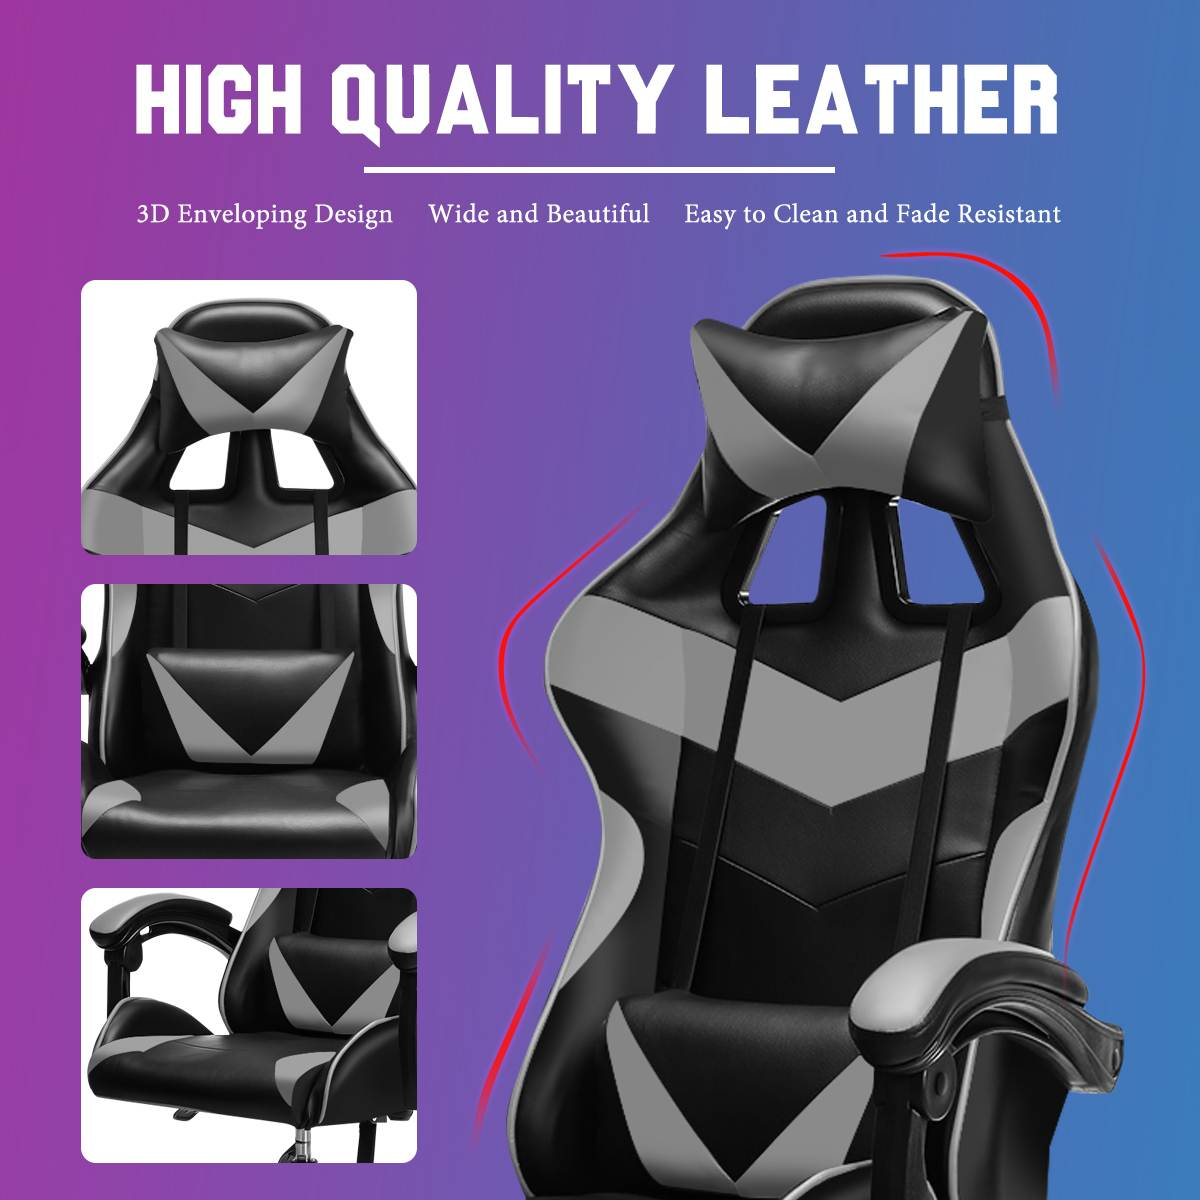 H8573b72dc0654b1a816205148c0eda62s - Adjustable Office Chair Gaming Ergonomic Leather Racing Desk Chairs Gaming Computer Chaise Game Chairs Reclining Seating